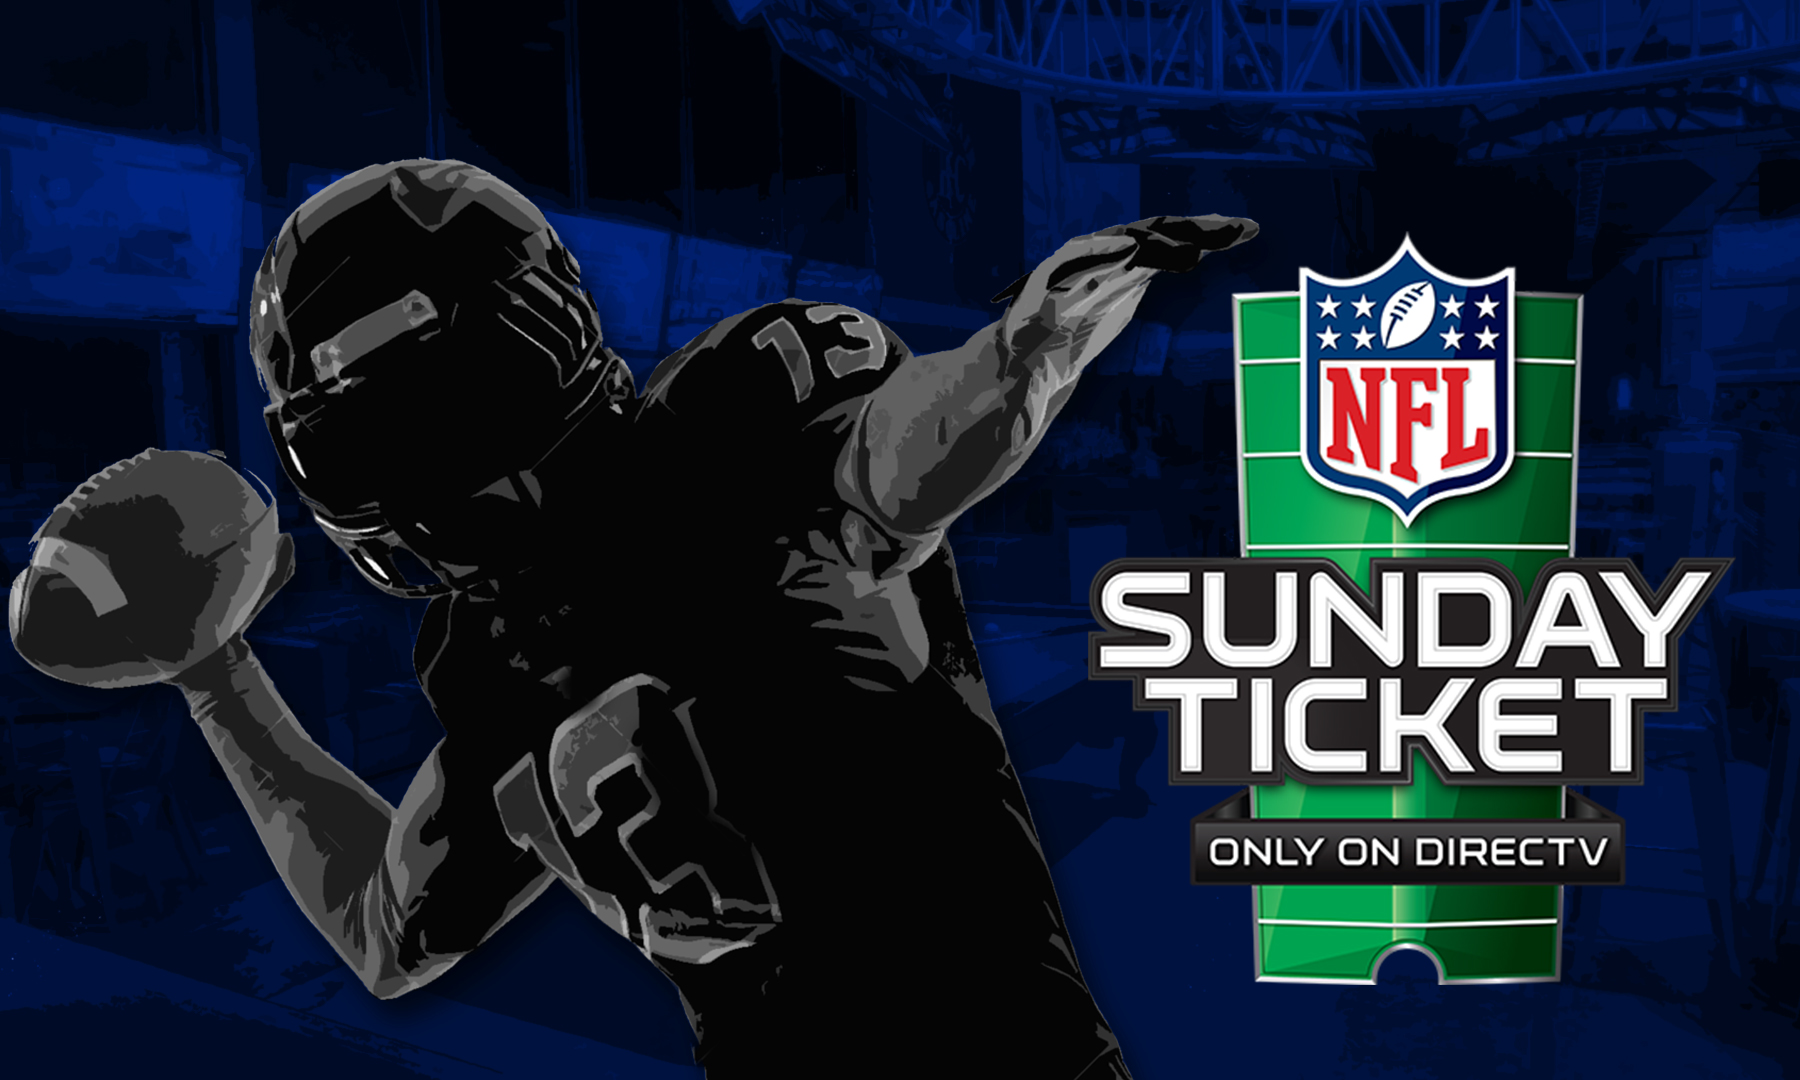 NFL Games Live Streaming Services AT&T TV Now